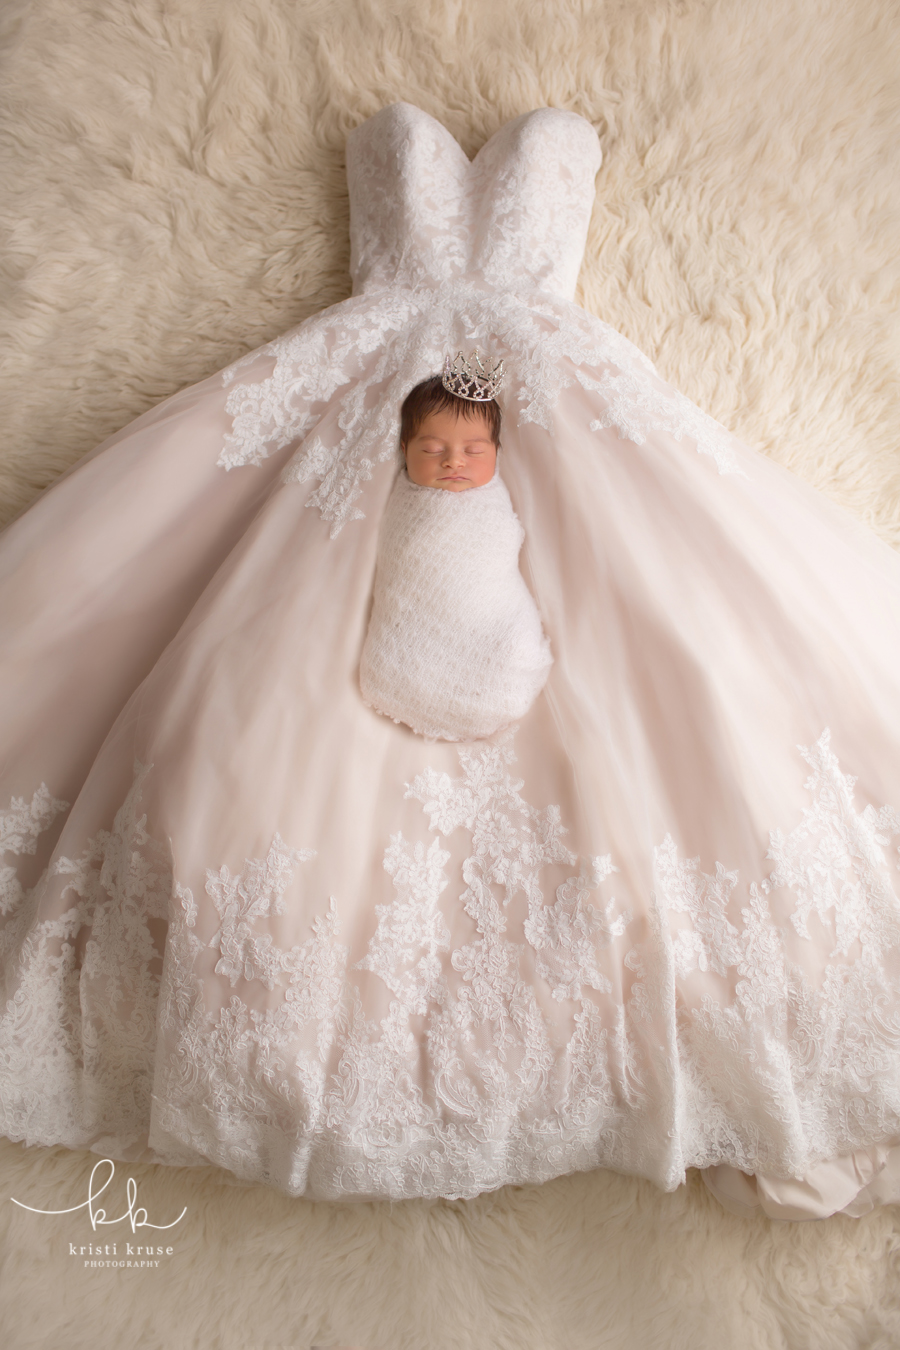 Baby girl wrapped in white swaddle and wearing crown laying on mom's wedding dress